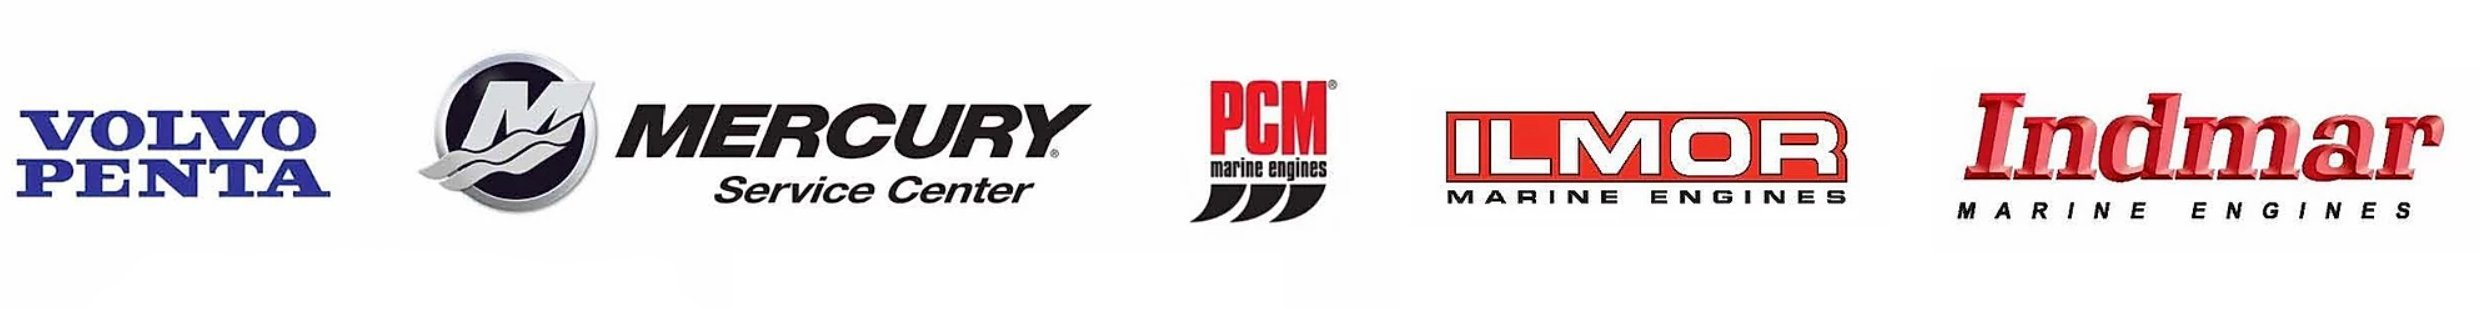 Flagship Marine offers servicing and parts for Volvo Penta, Mercury, PCM, Ilmor and Indmar engines.